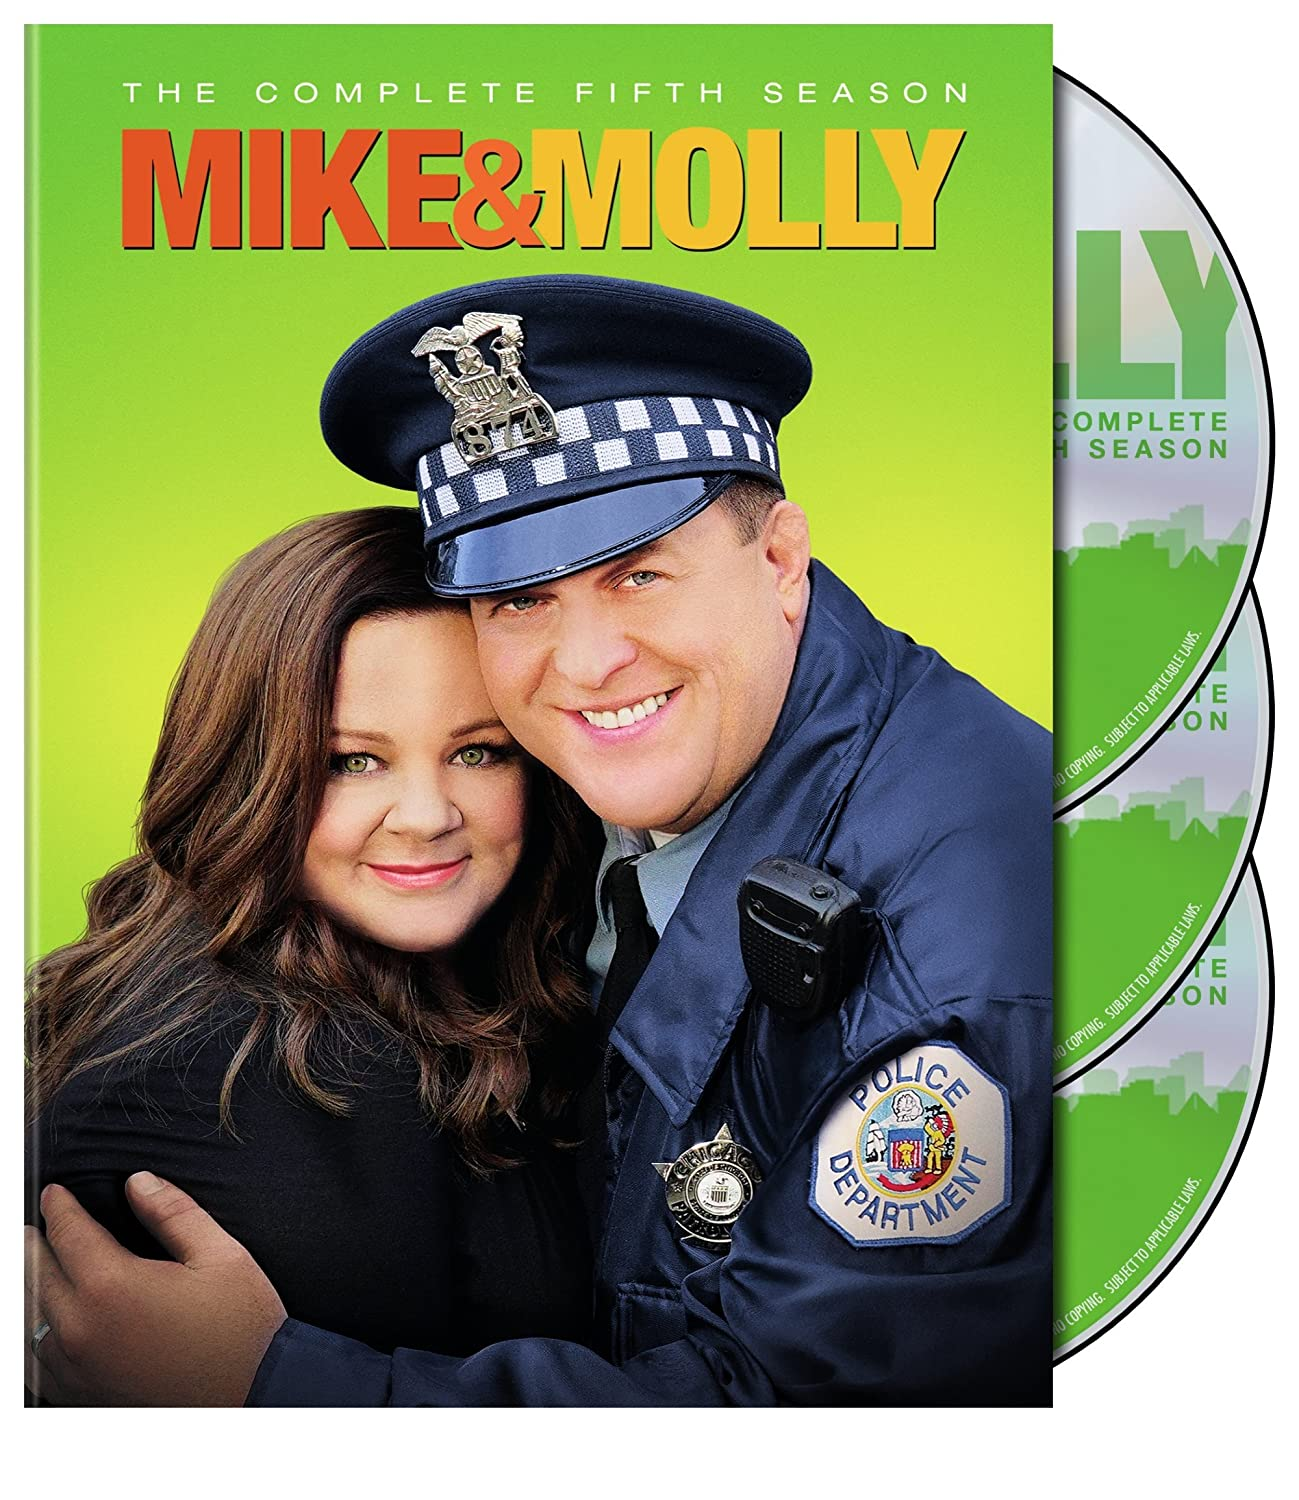 Mike Molly S04E04 Careful What You Dig For HDTV x264 LOL ettv